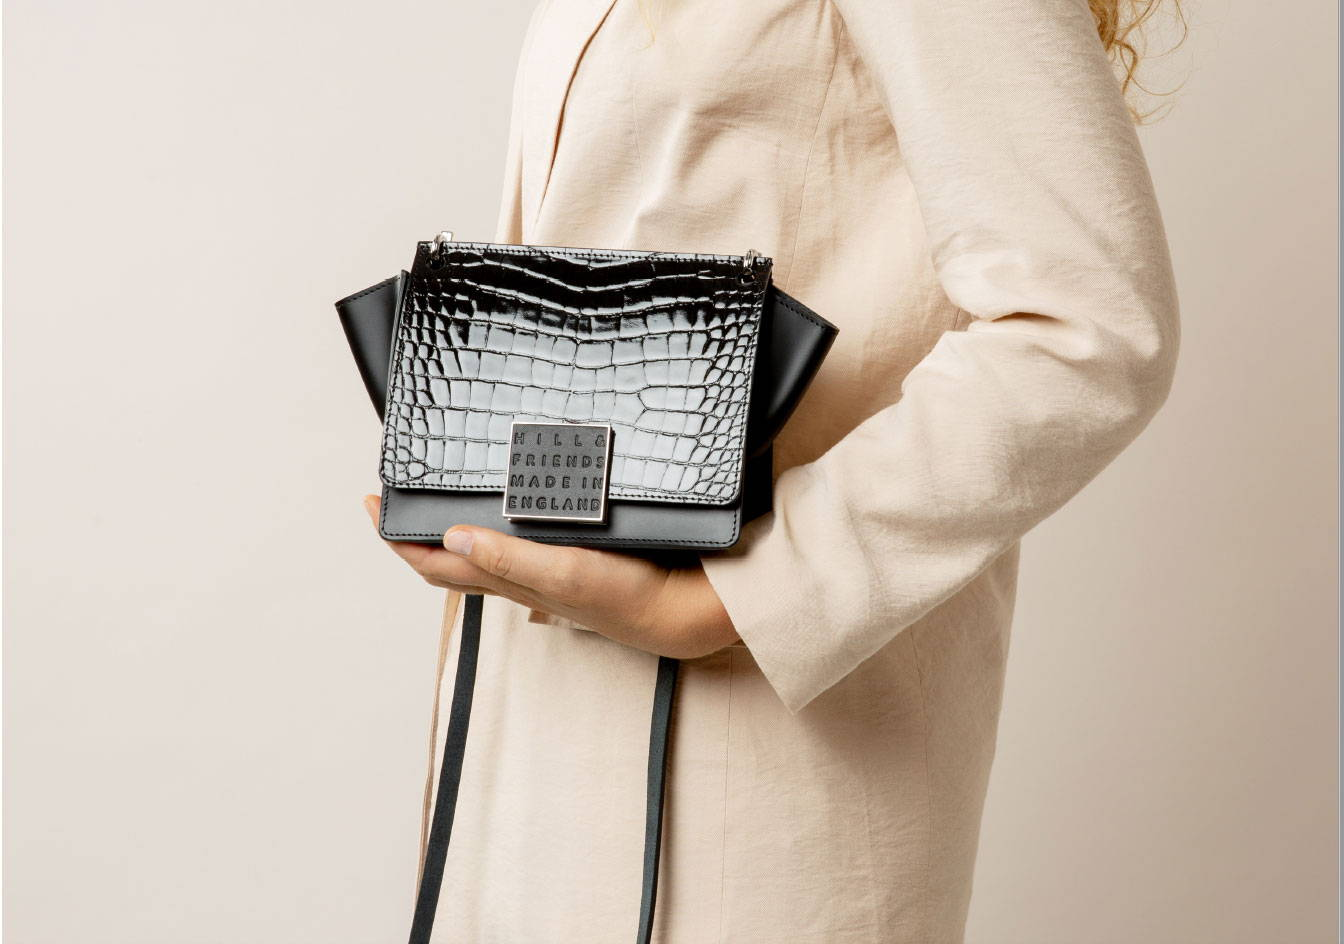 Hill and Friends Riley Bag in Black Patent Croc Emboss Leather - Made In Endgland